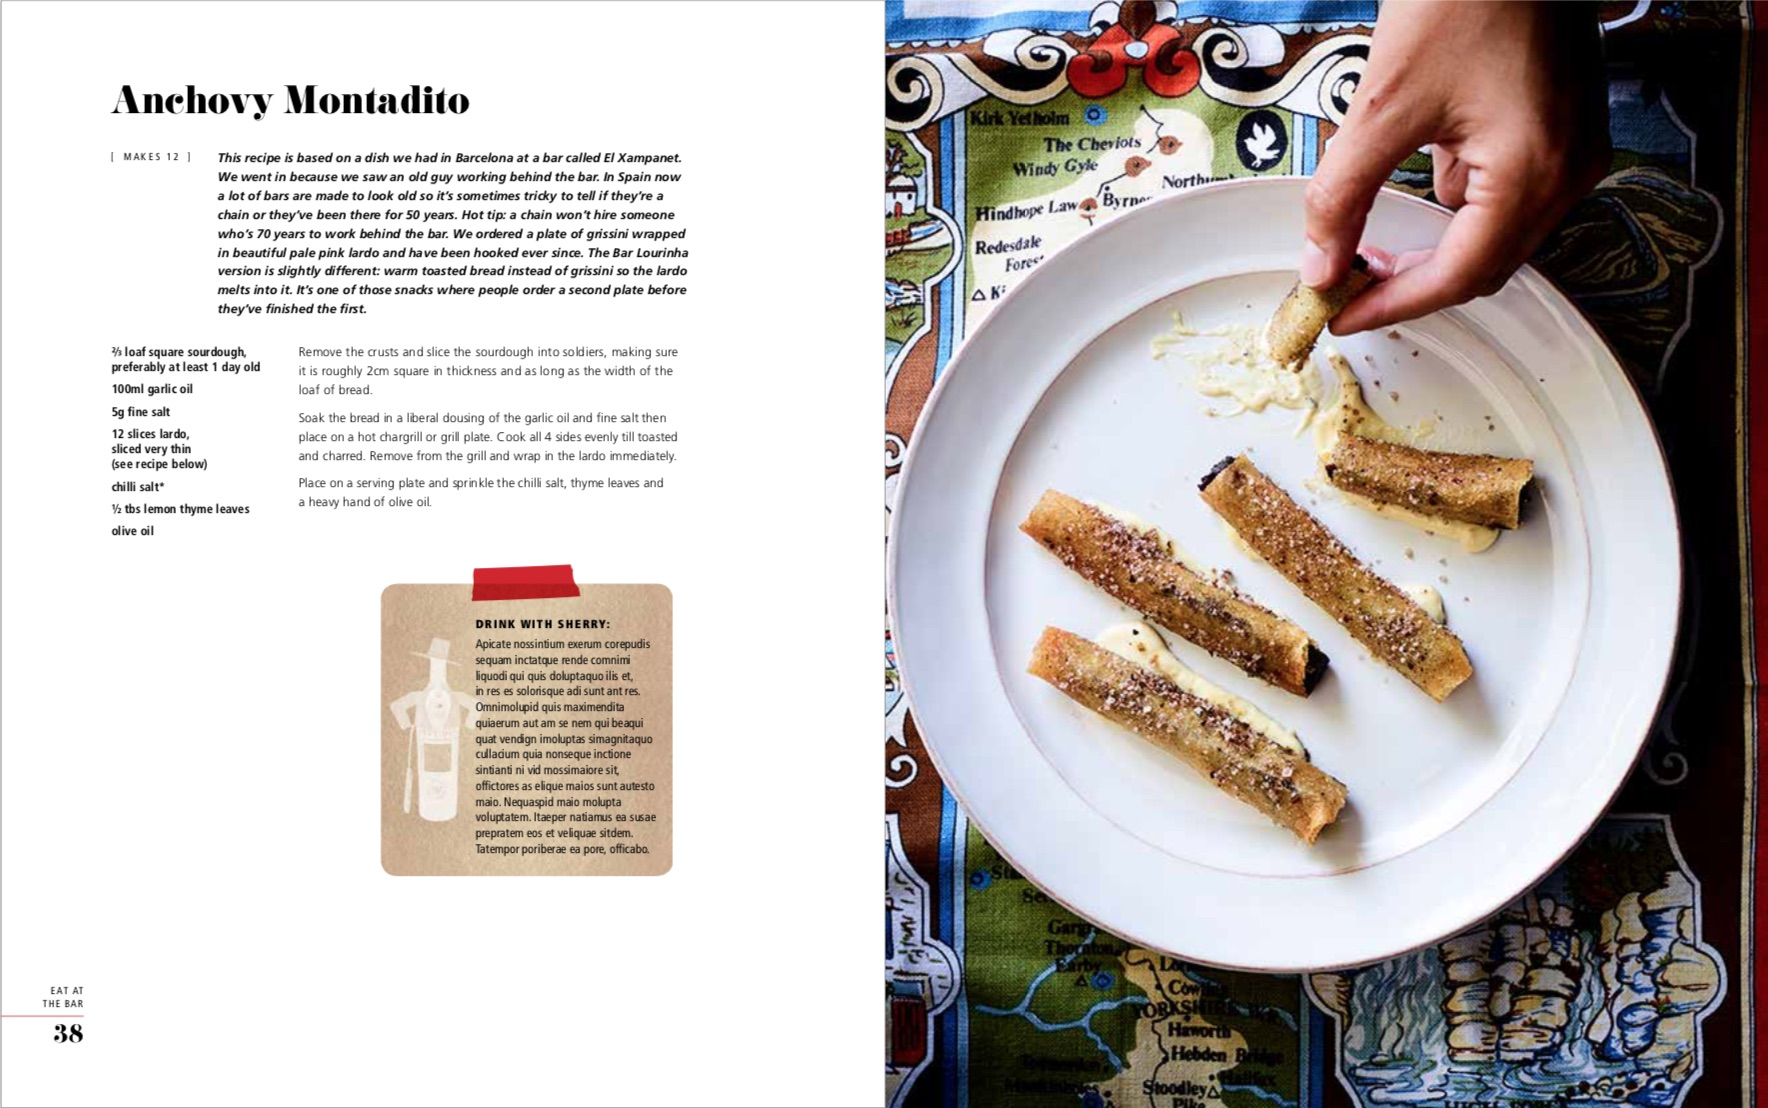 By Jo Gamvros and Matt McConnell from Eat at the Bar: Recipes Inspired by Travels in Spain, Portugal and Beyond copyright Hardie Grant Books 2018